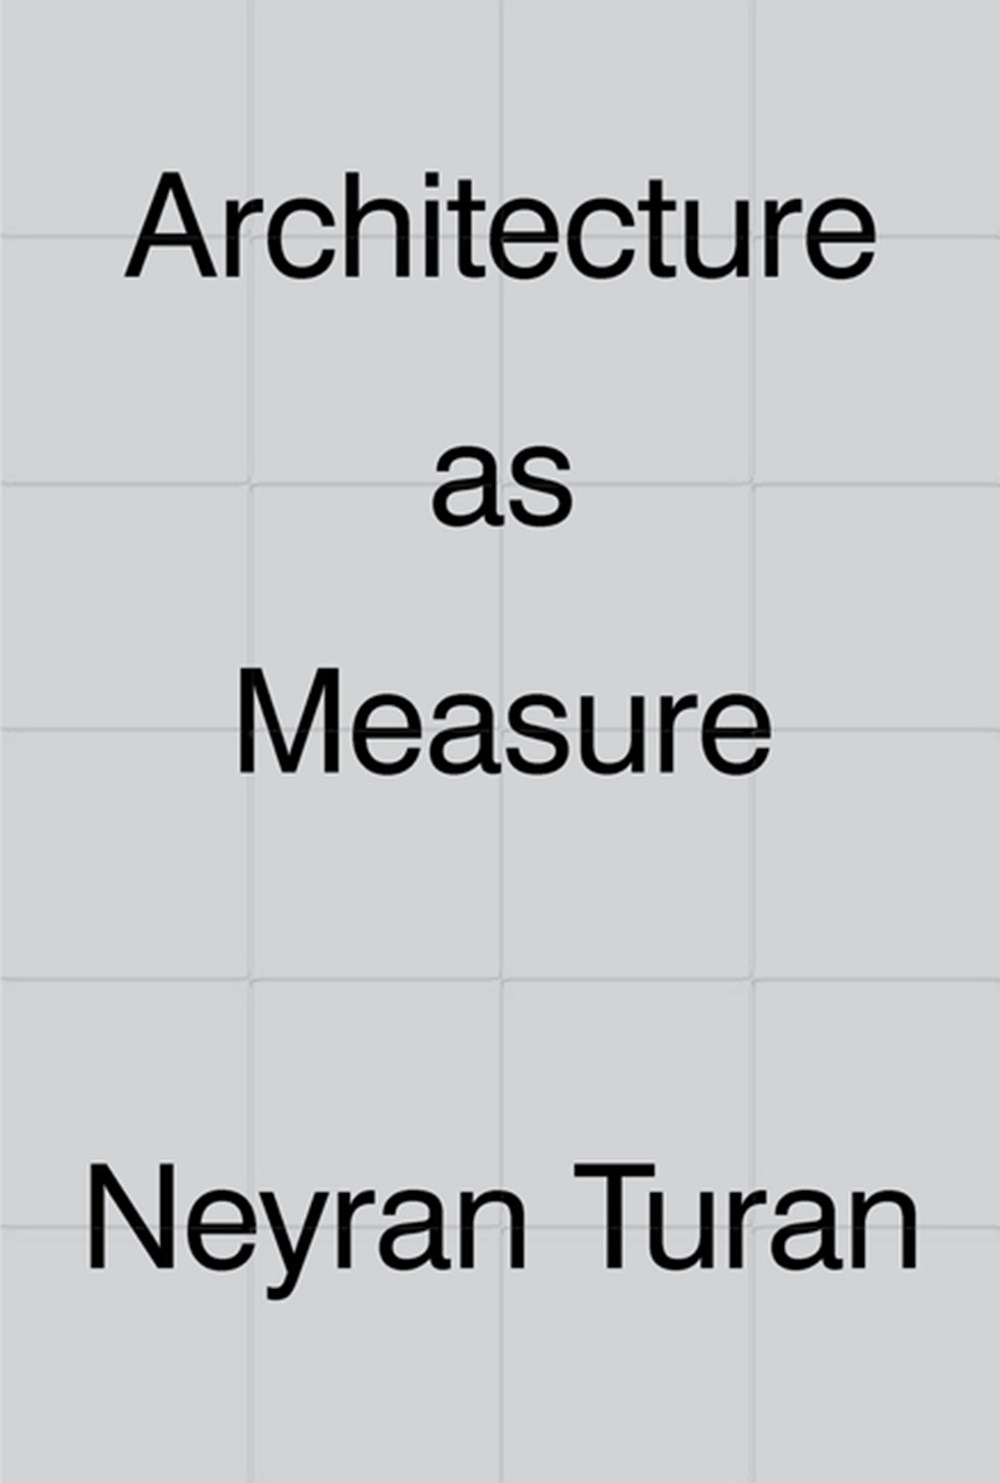 Architecture as Measure